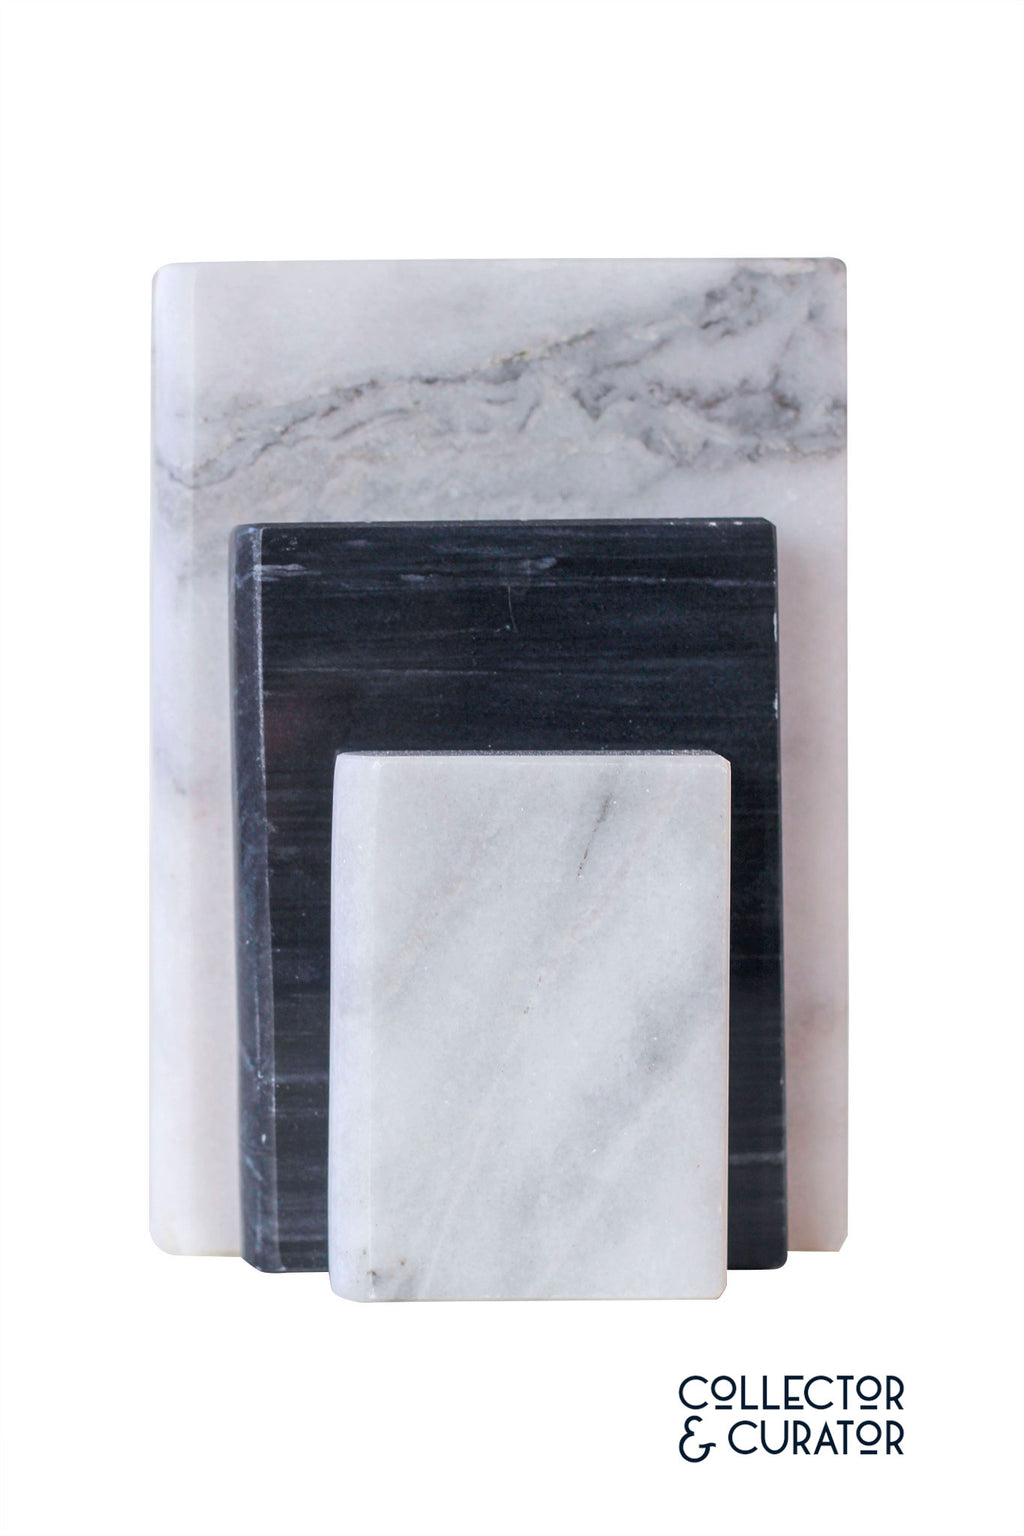 Pair of Black and White Marble Bookends - Collector & Curator